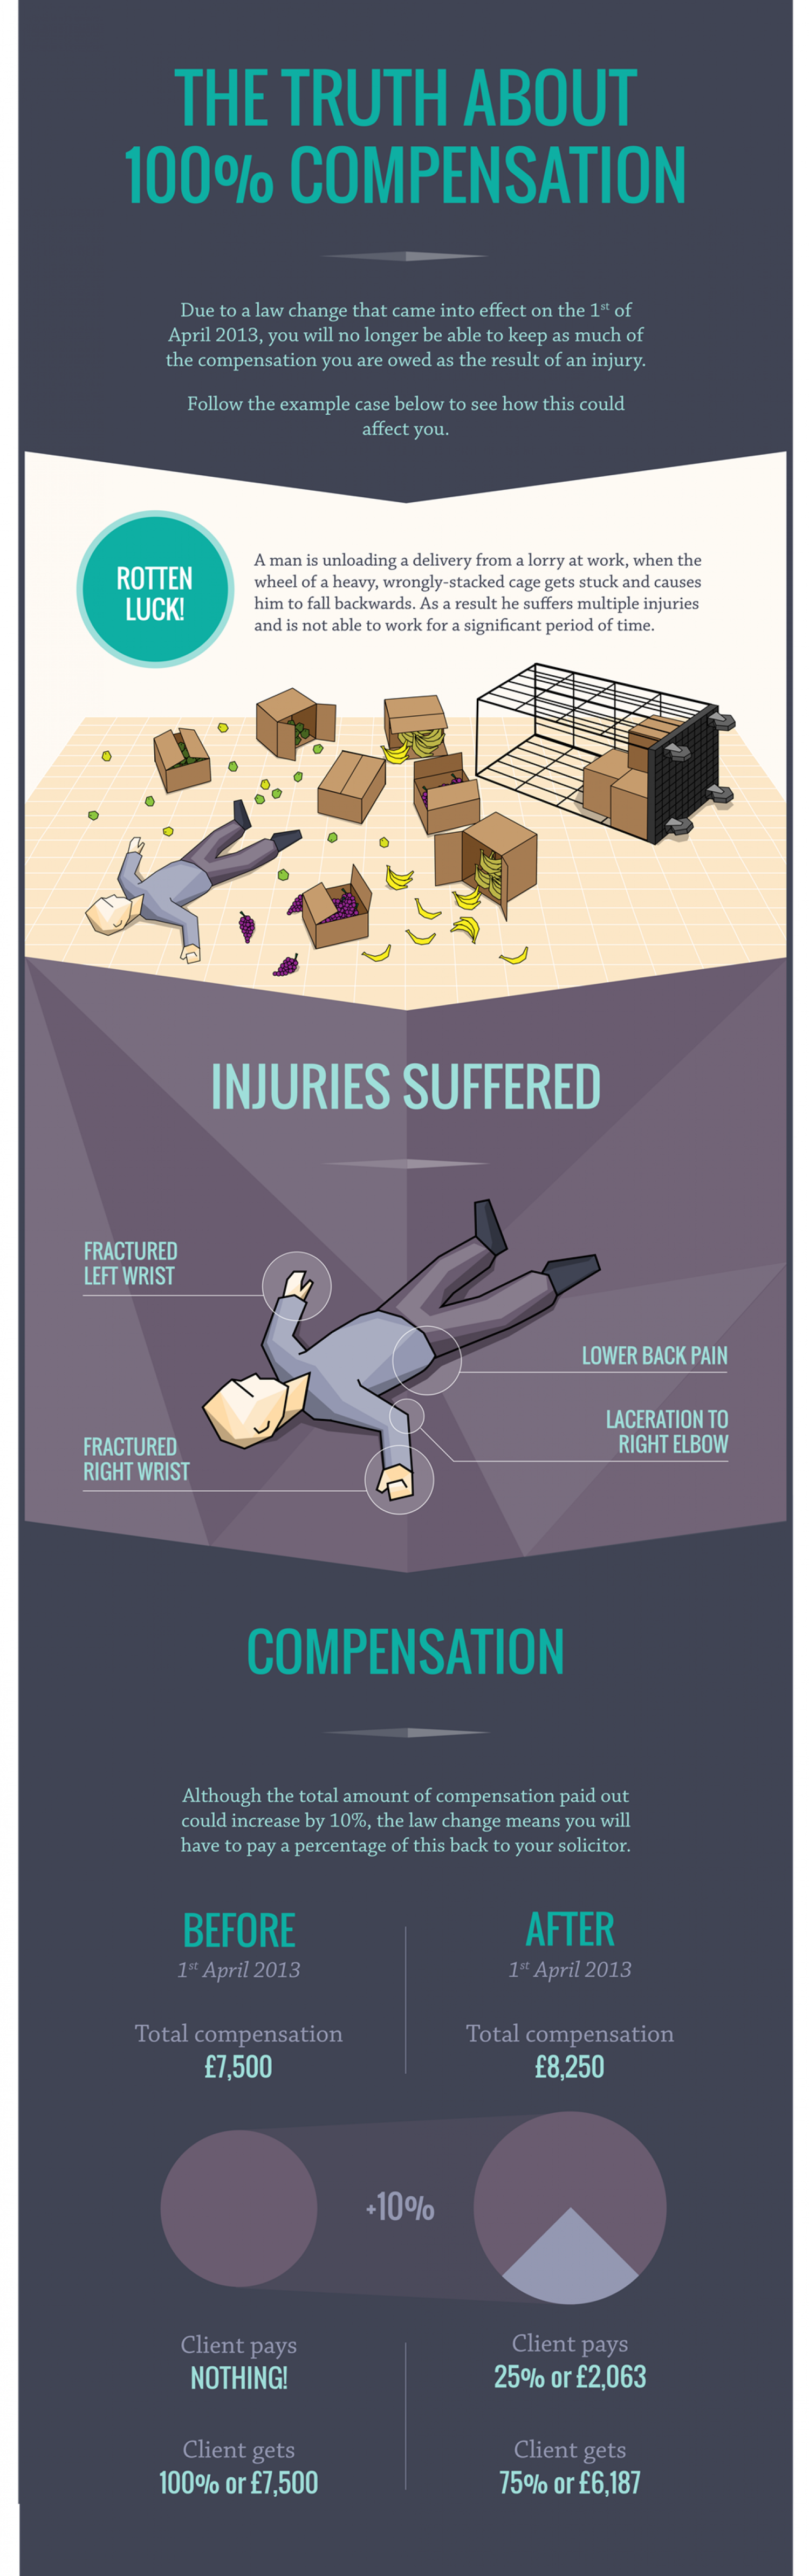 Accident Law Change Leads to Less Compensation Infographic